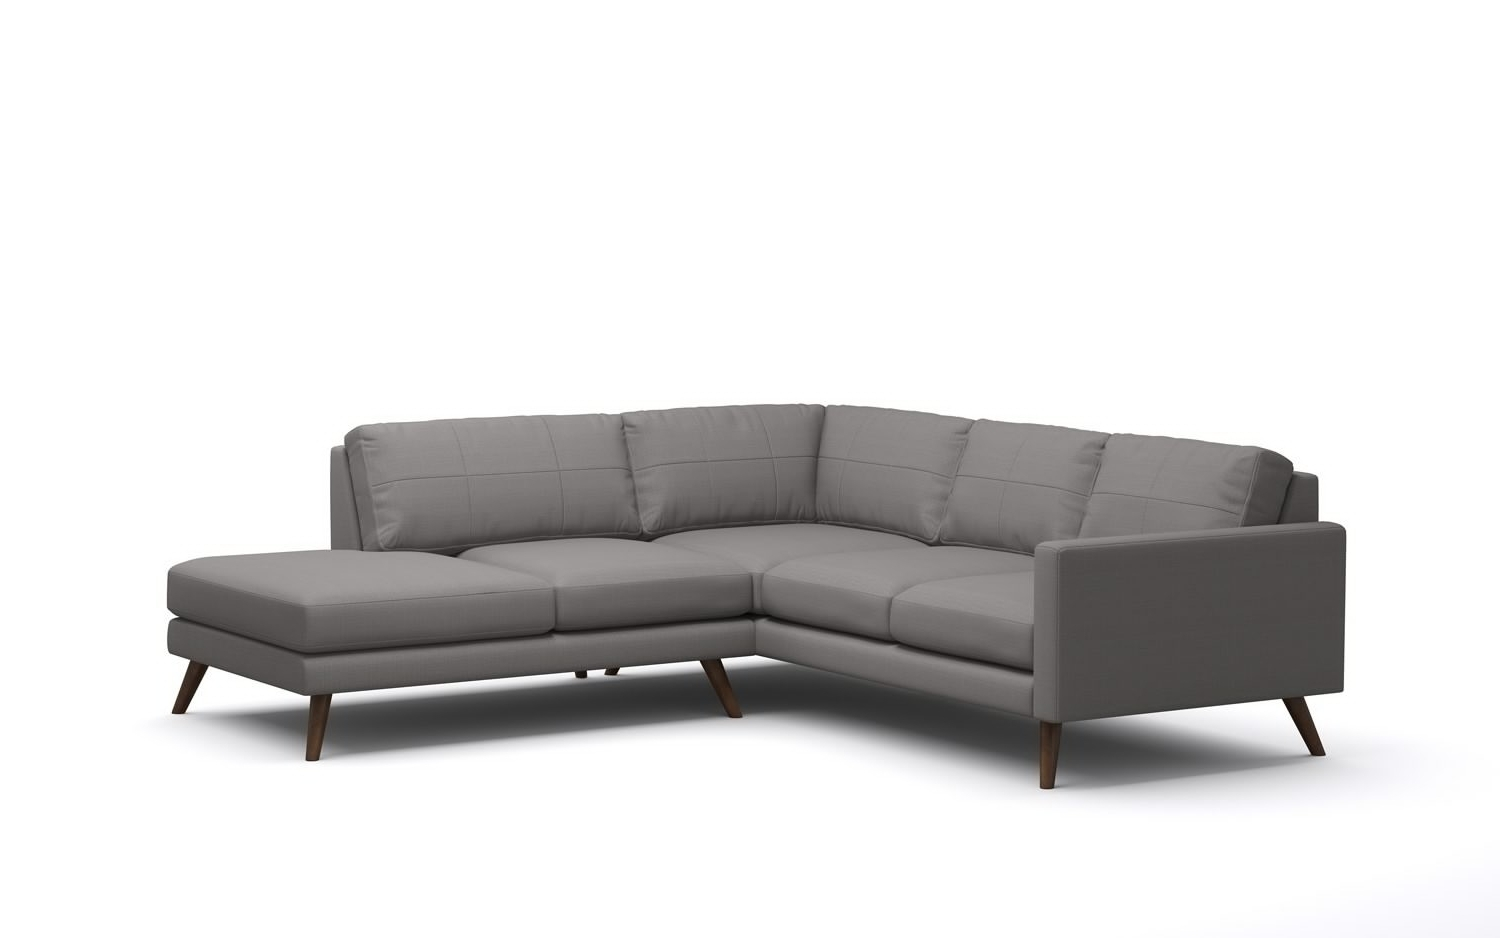 Best And Newest Sectional Sofa Design: European Sectional Sofa Houzz Online Sale For Houzz Sectional Sofas (View 3 of 20)